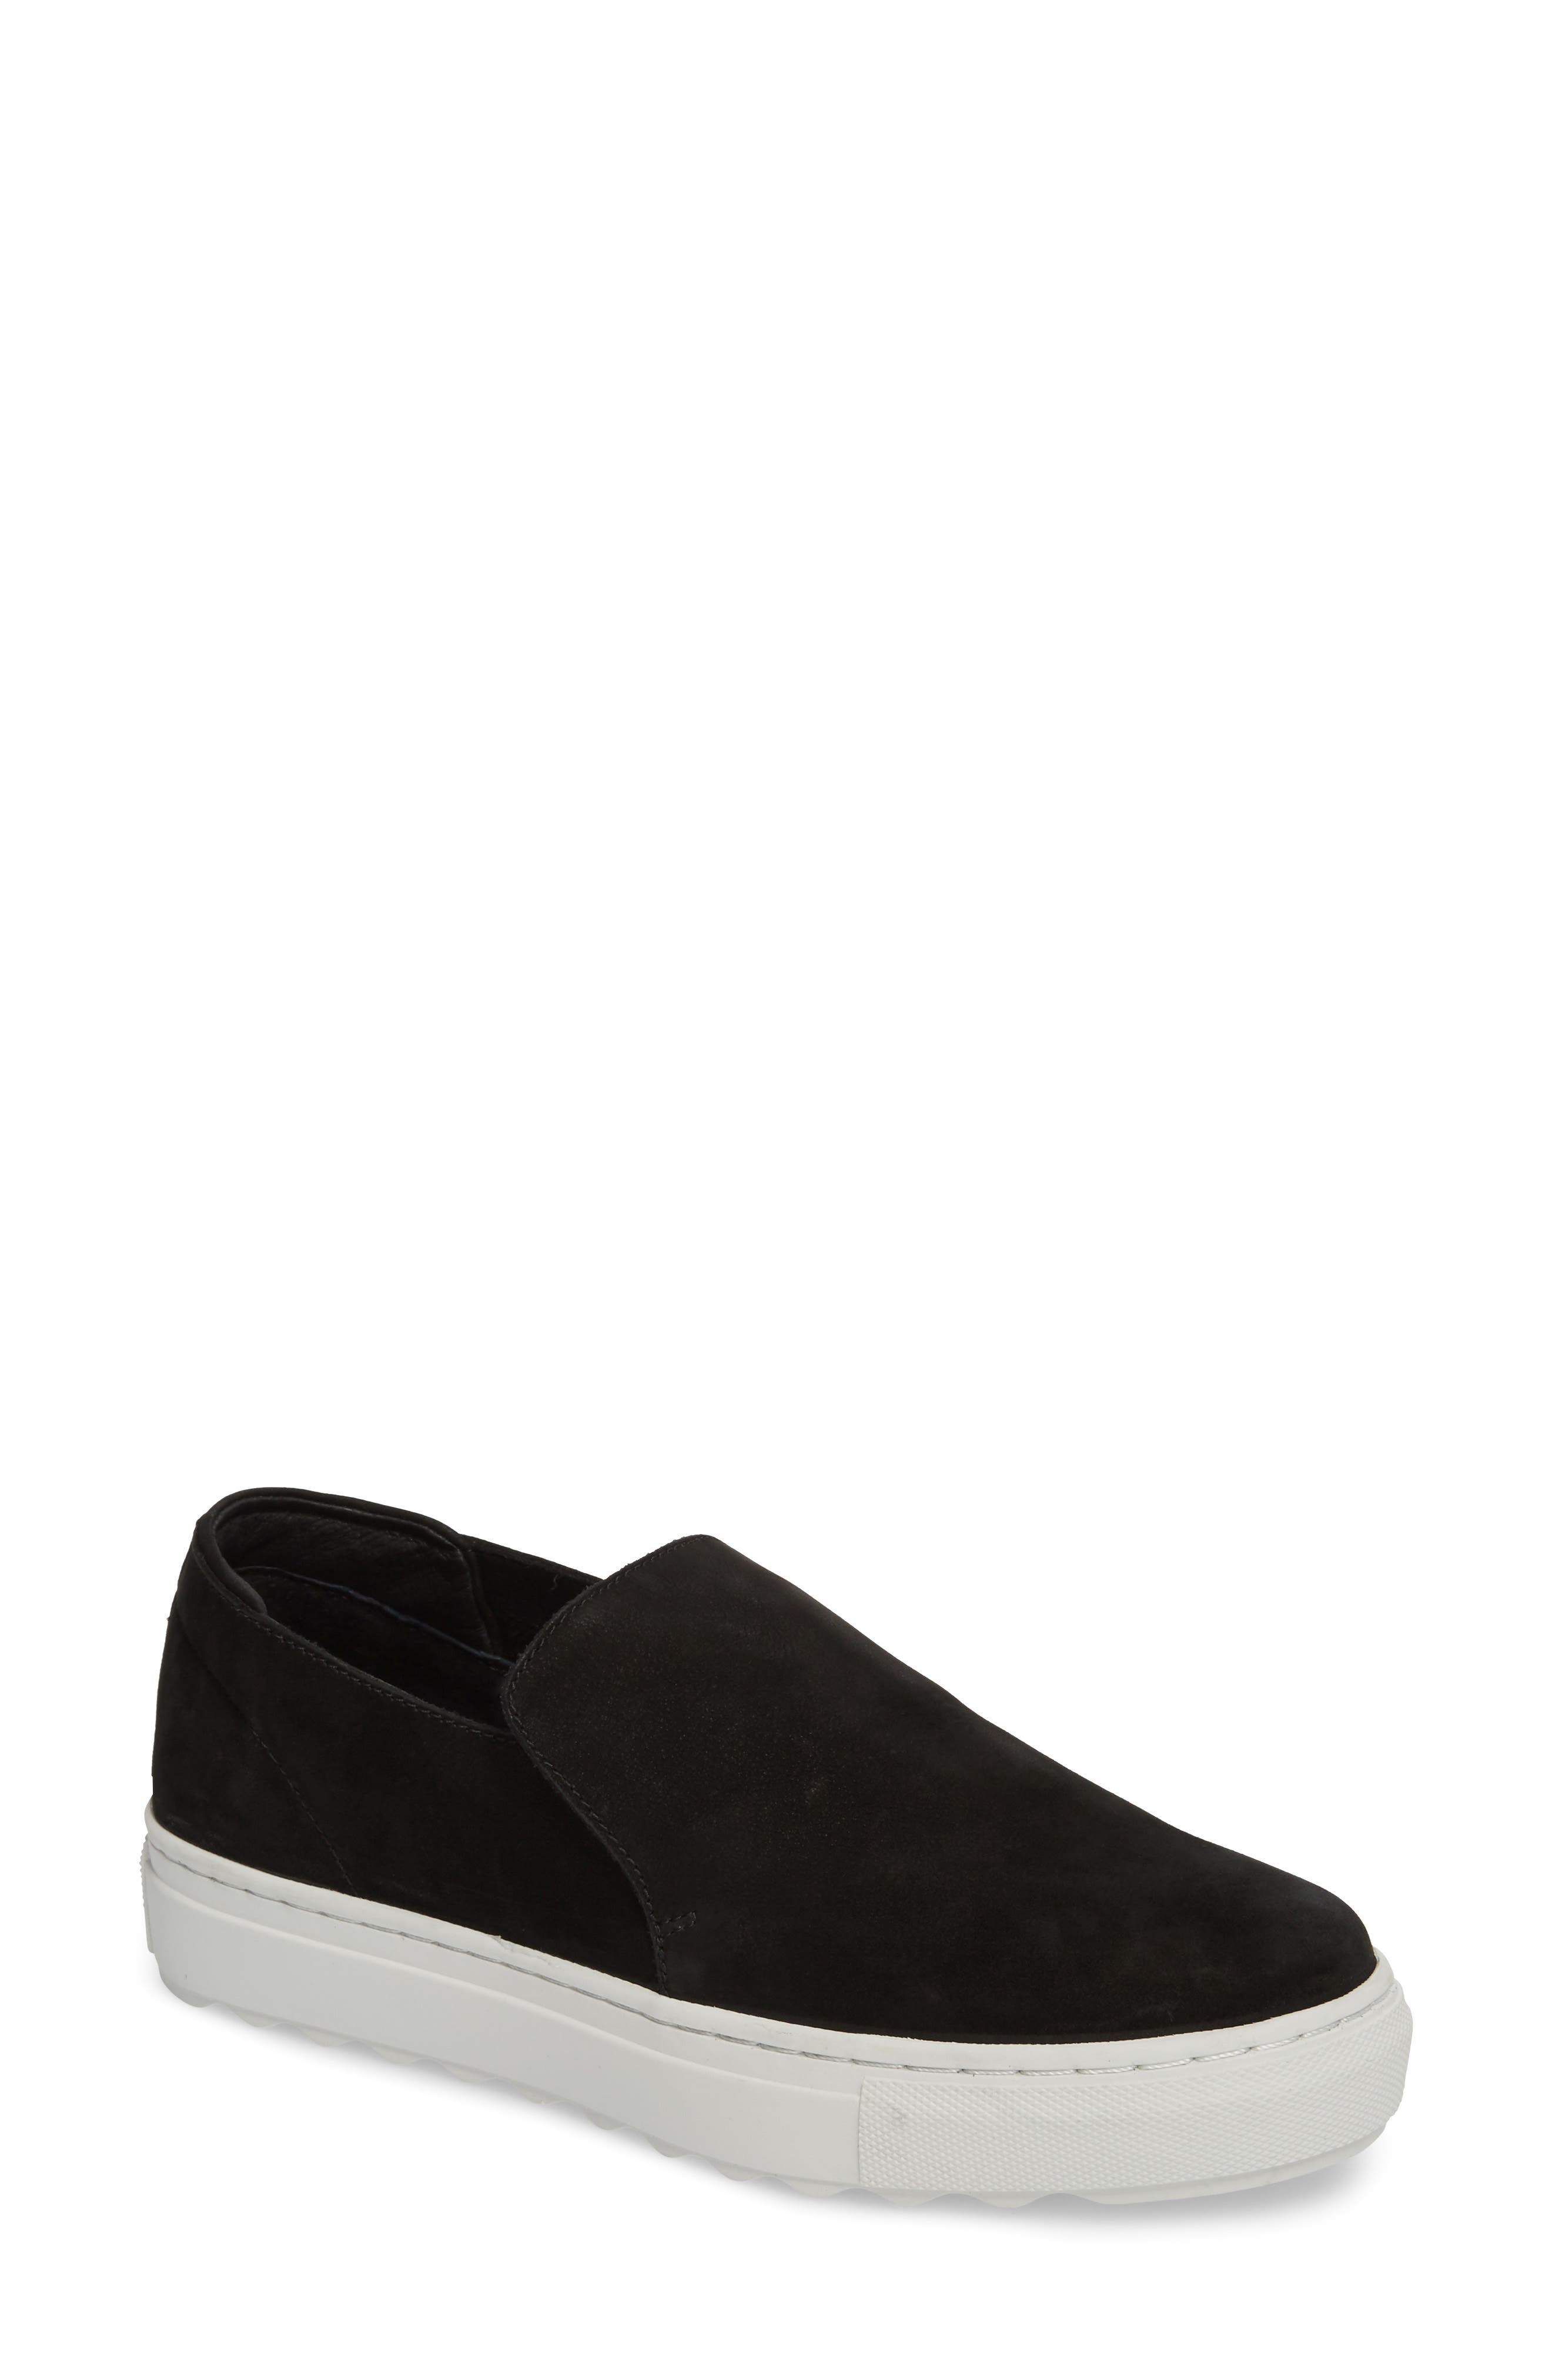 Perrie Platform Slip-On,                         Main,                         color, 001